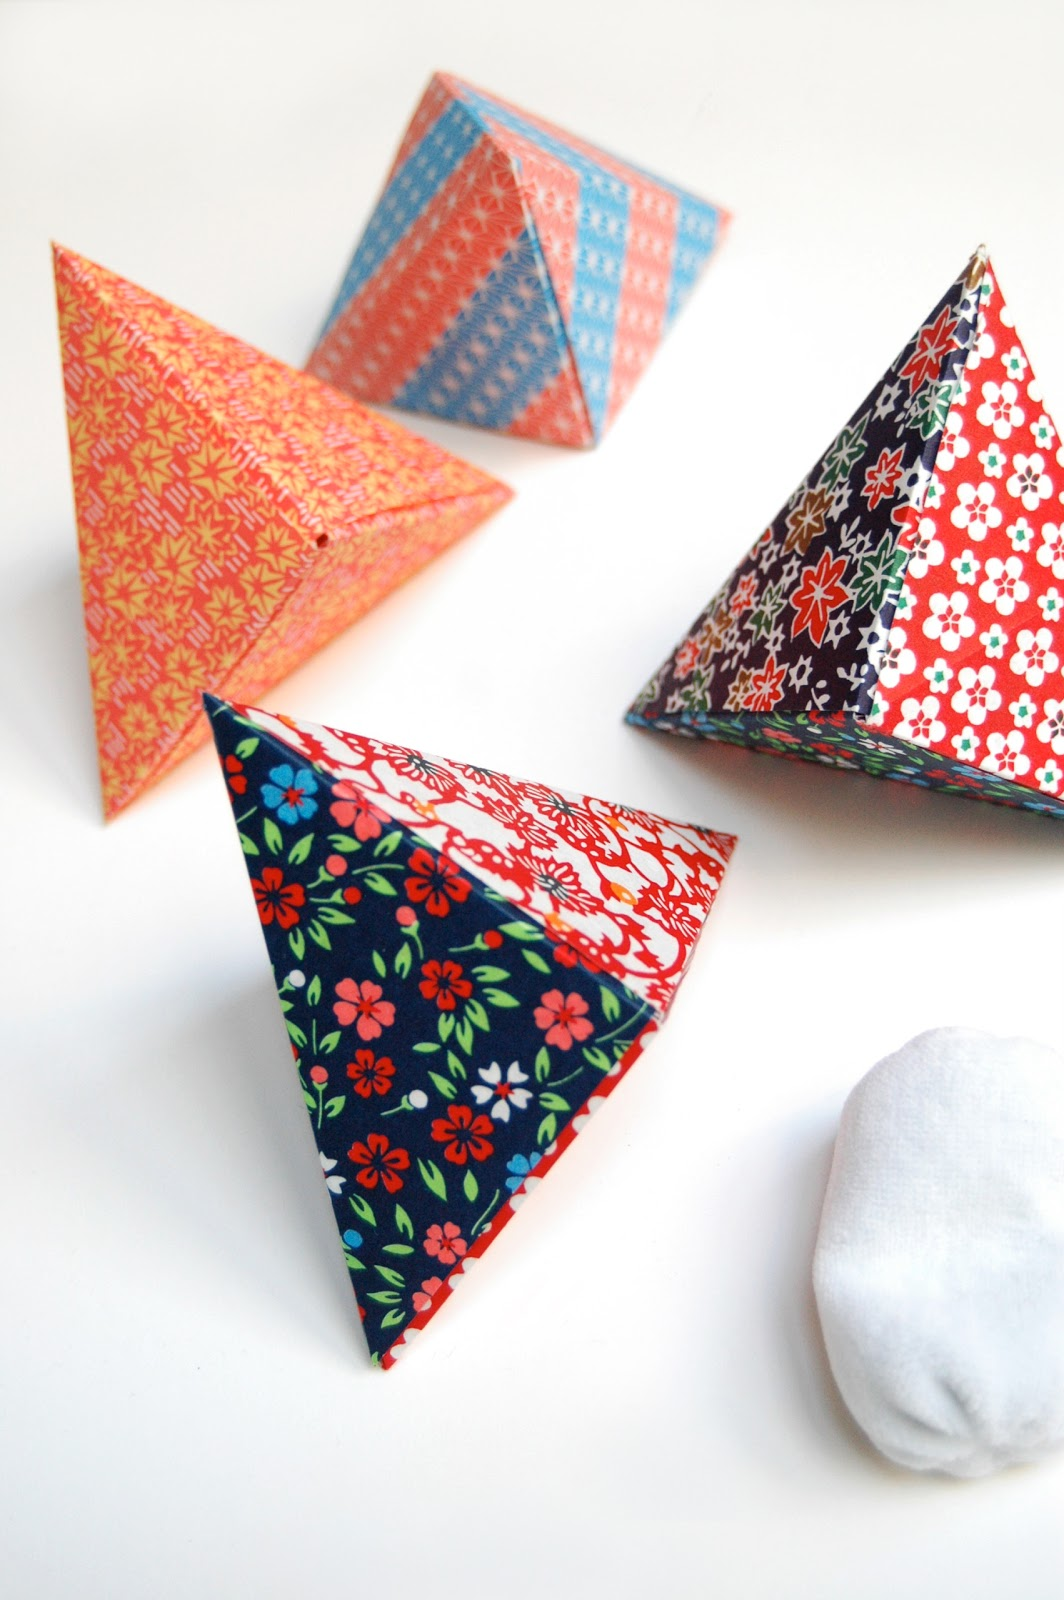 Småkompisar: Make an Origami Box for Small Gifts like ... - photo#7